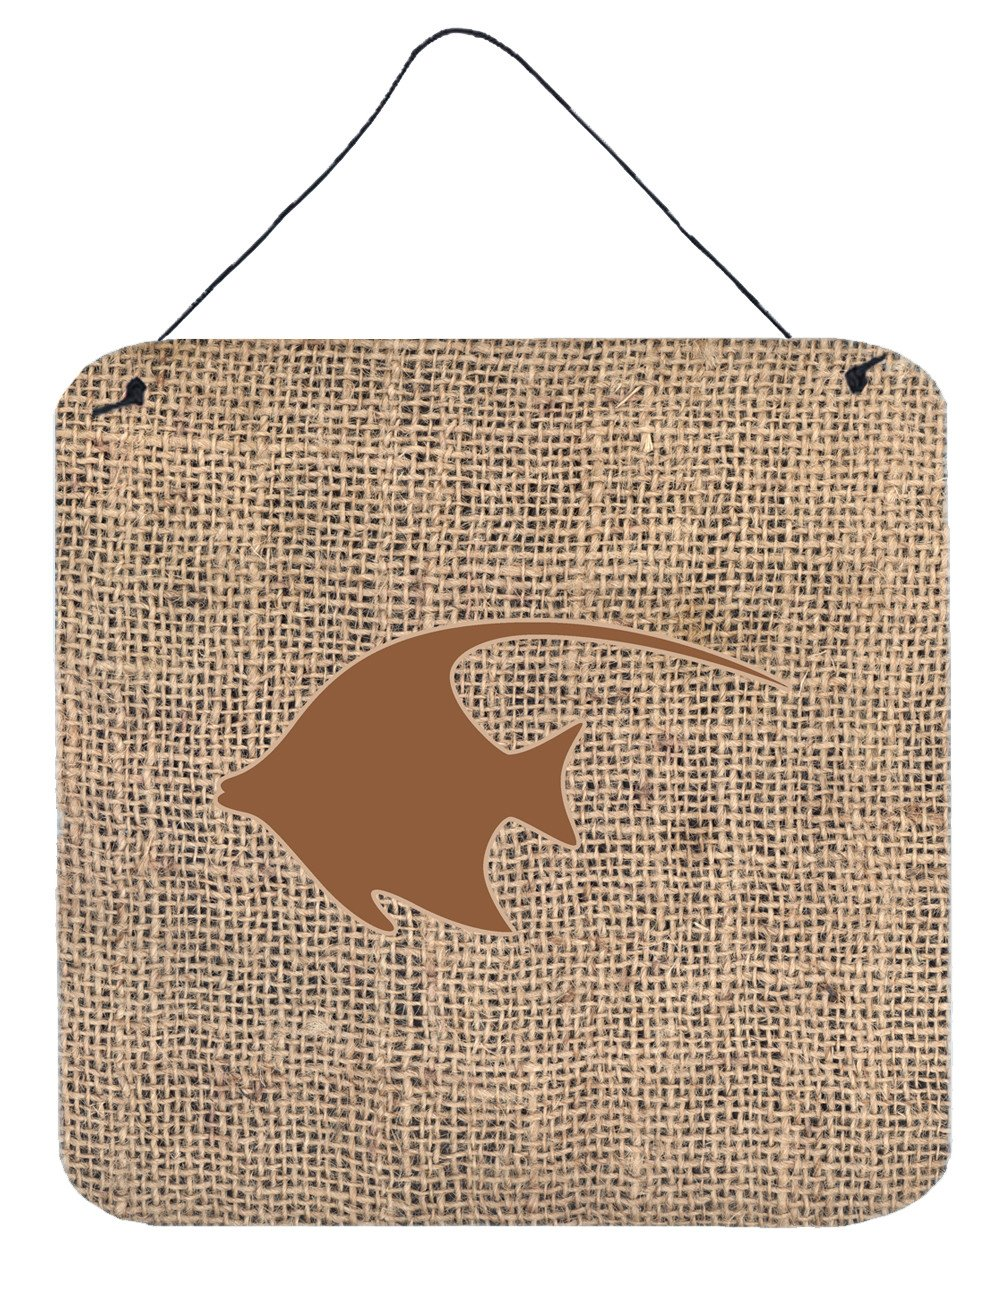 Fish - Angel Fish Burlap and Brown Wall or Door Hanging Prints BB1019 by Caroline's Treasures